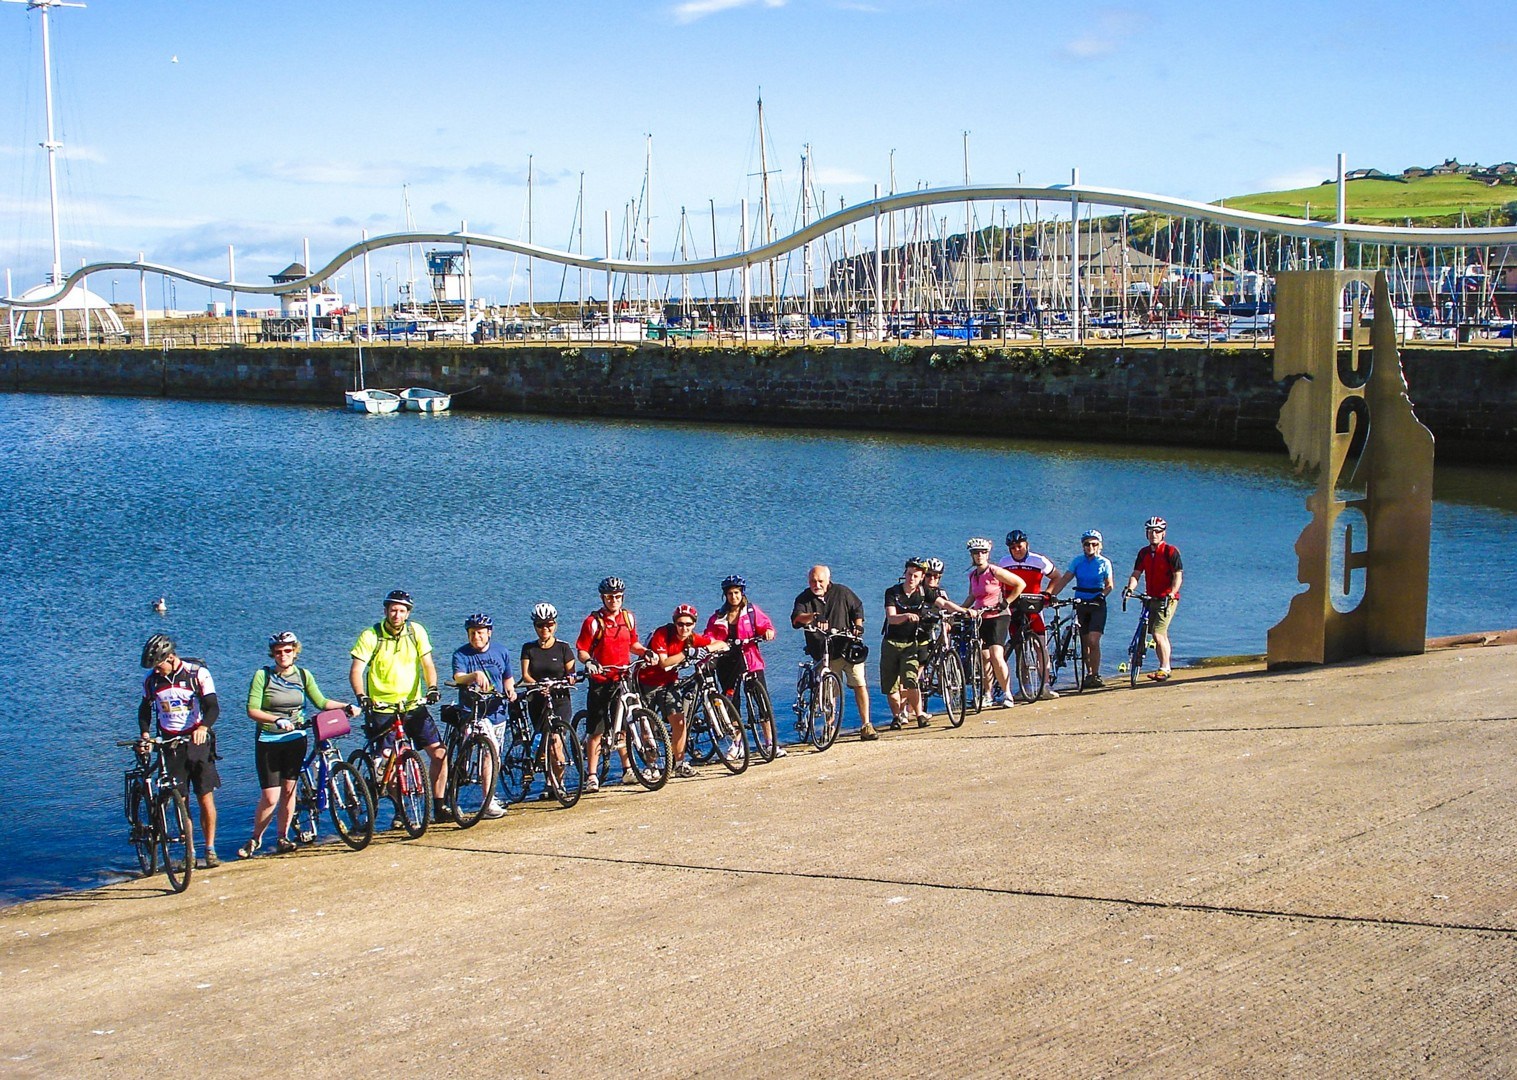 whitehaven-c2c-coast-to-coast-uk-cycling-tour.jpg - UK - C2C - Coast to Coast - Supported Leisure Cycling Holiday - Family Cycling